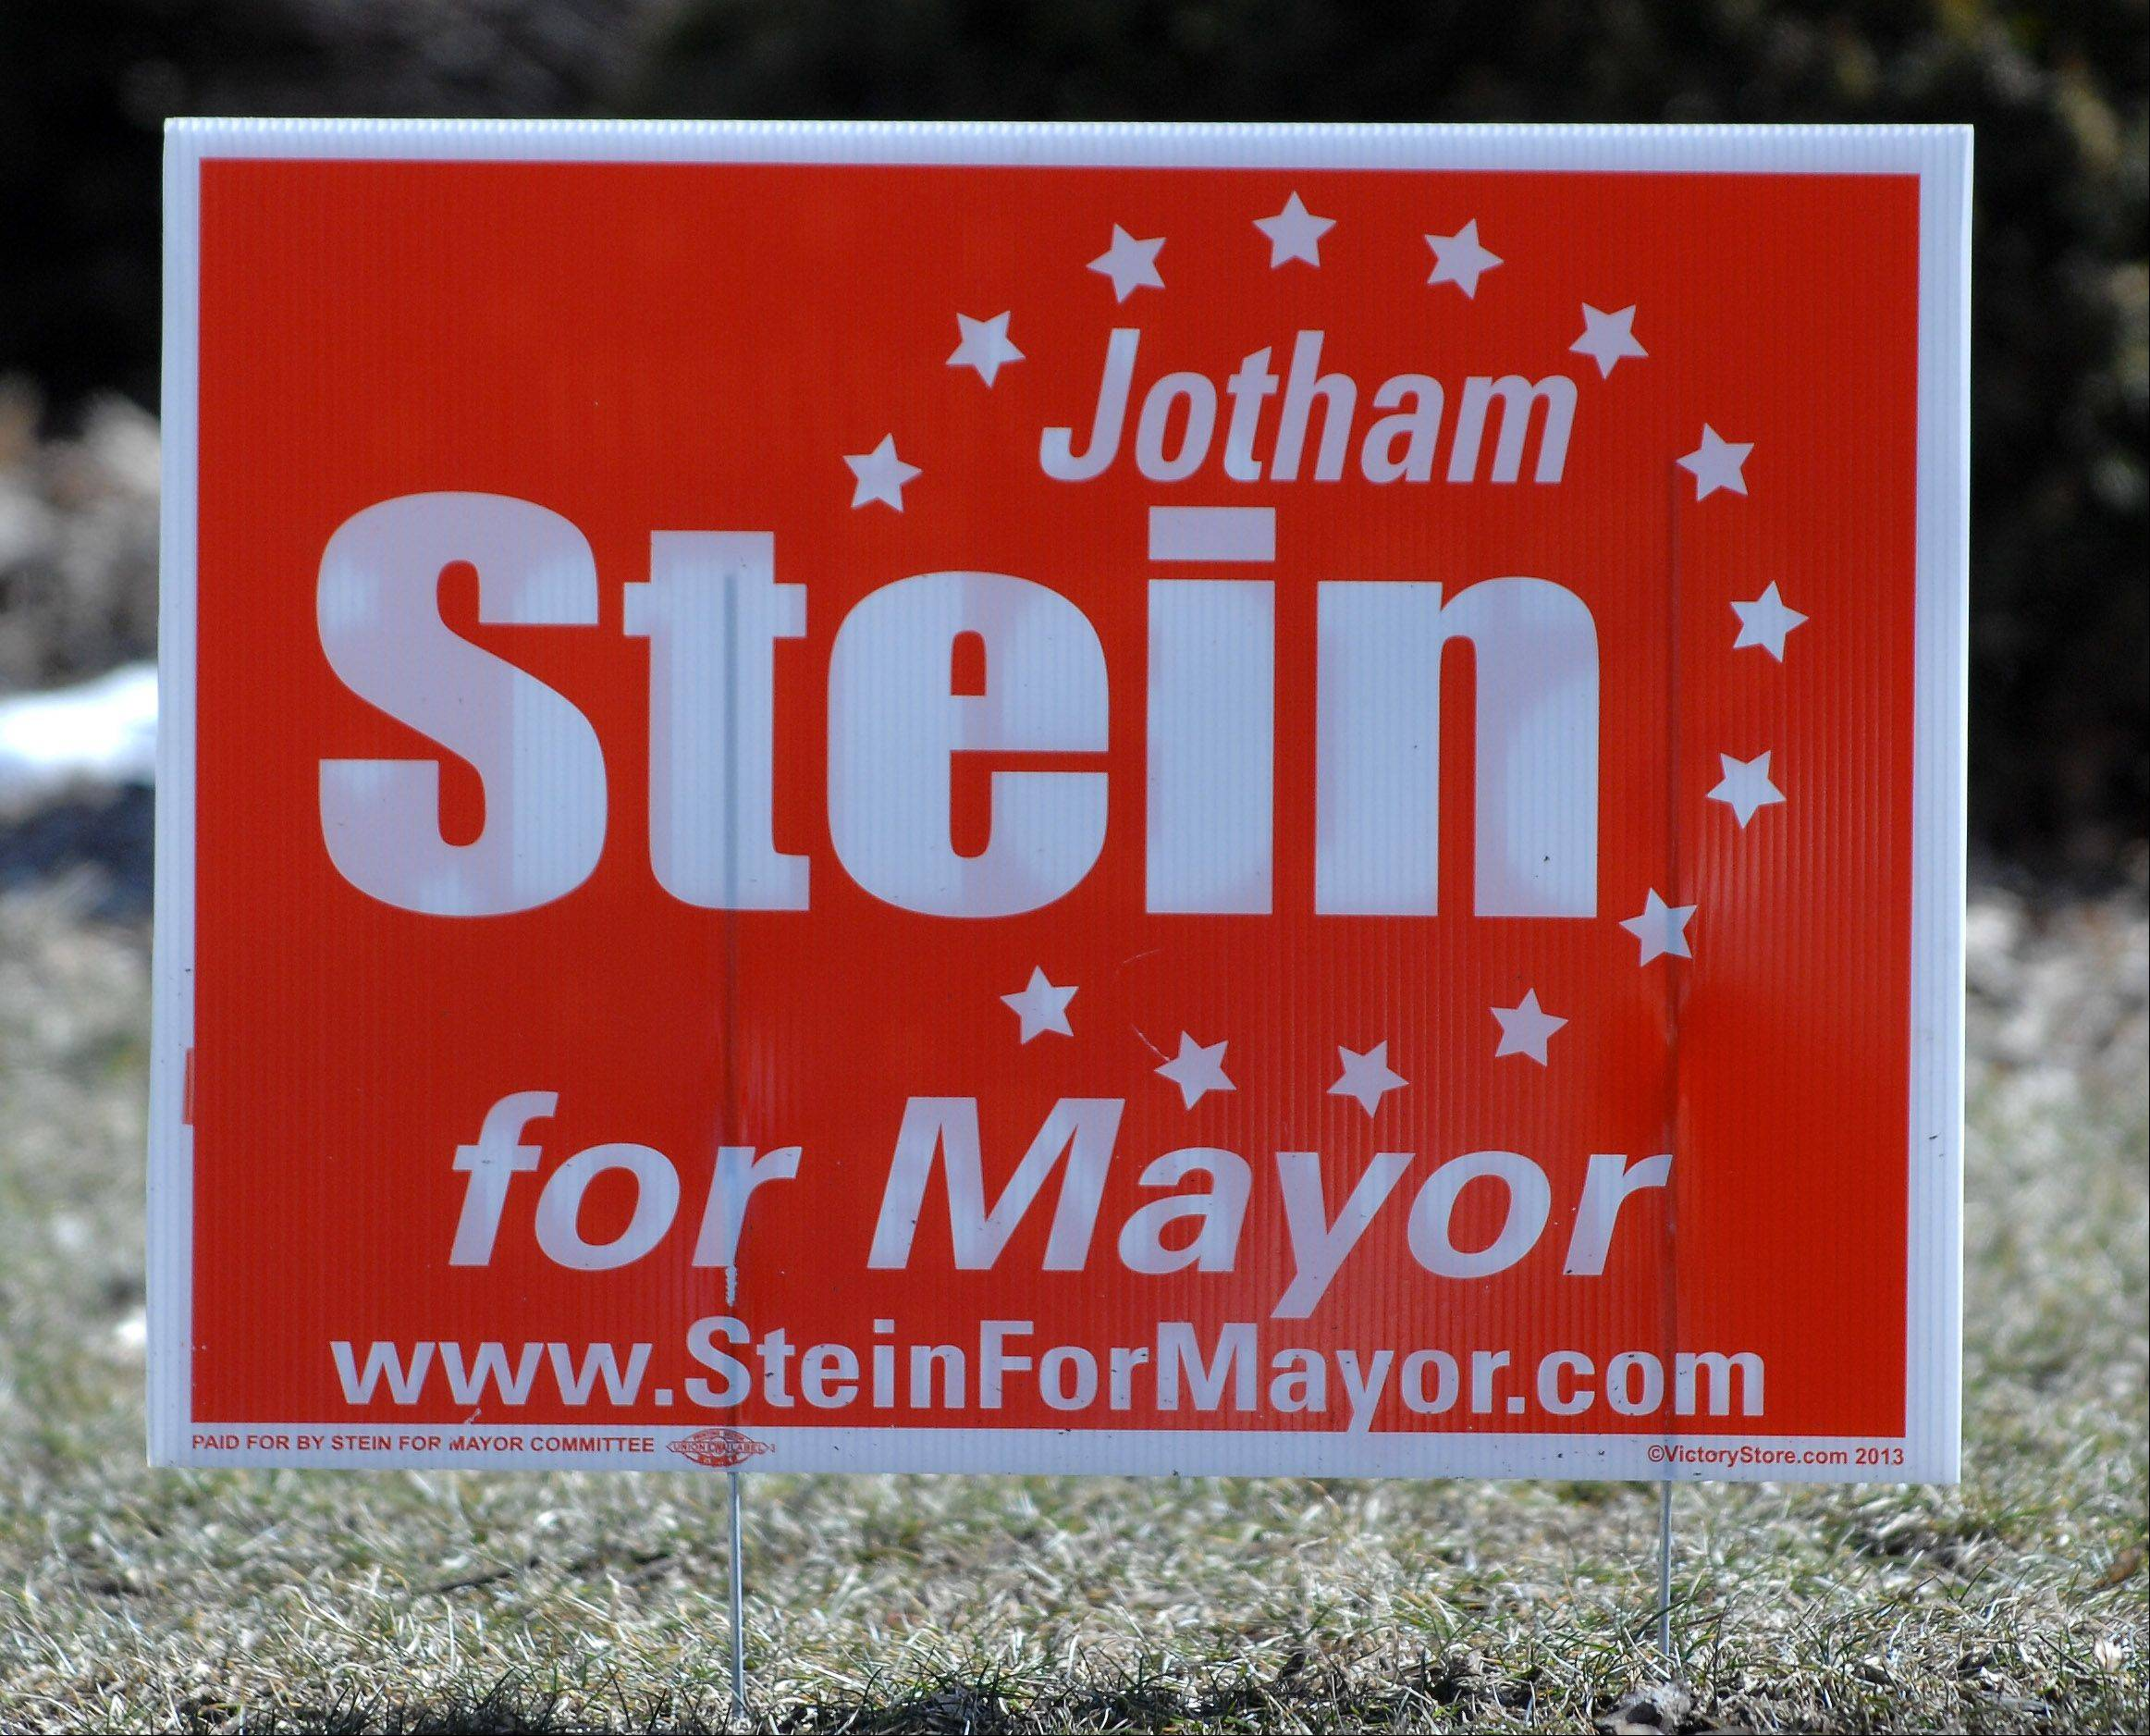 A yard sign for St. Charles mayoral candidate Jotham Stein.